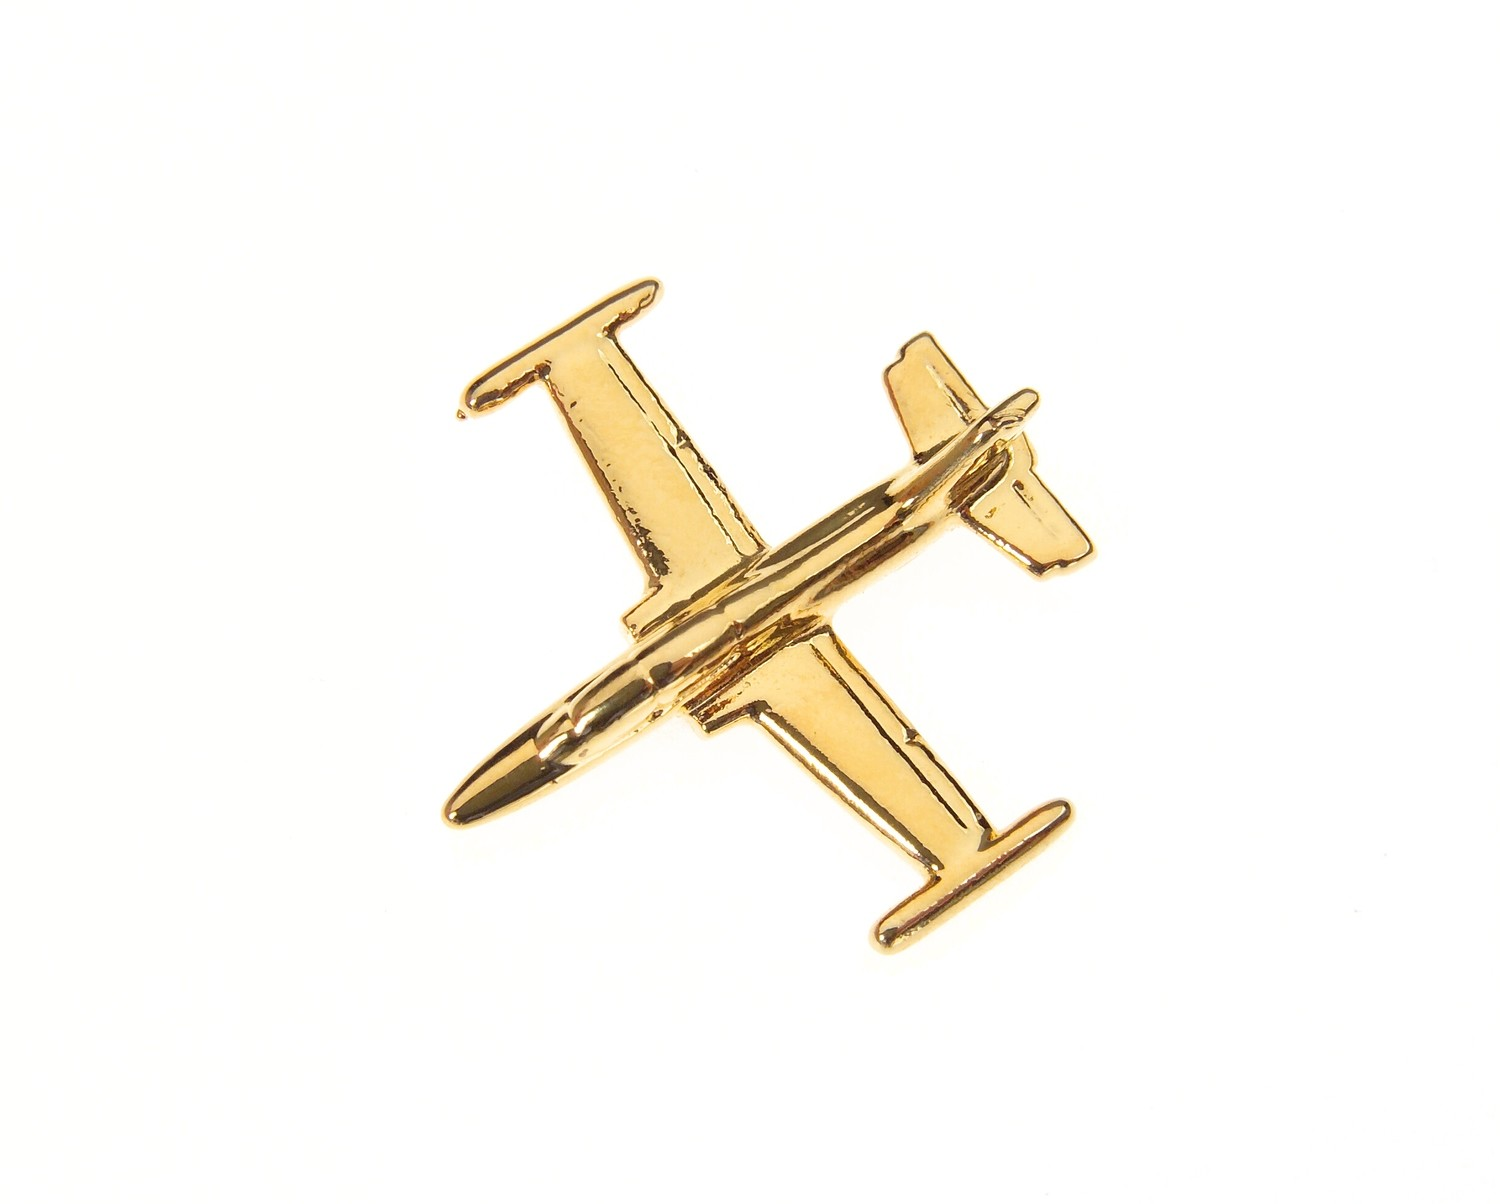 Aermacchi 339 Gold Plated Tie / Lapel Pin